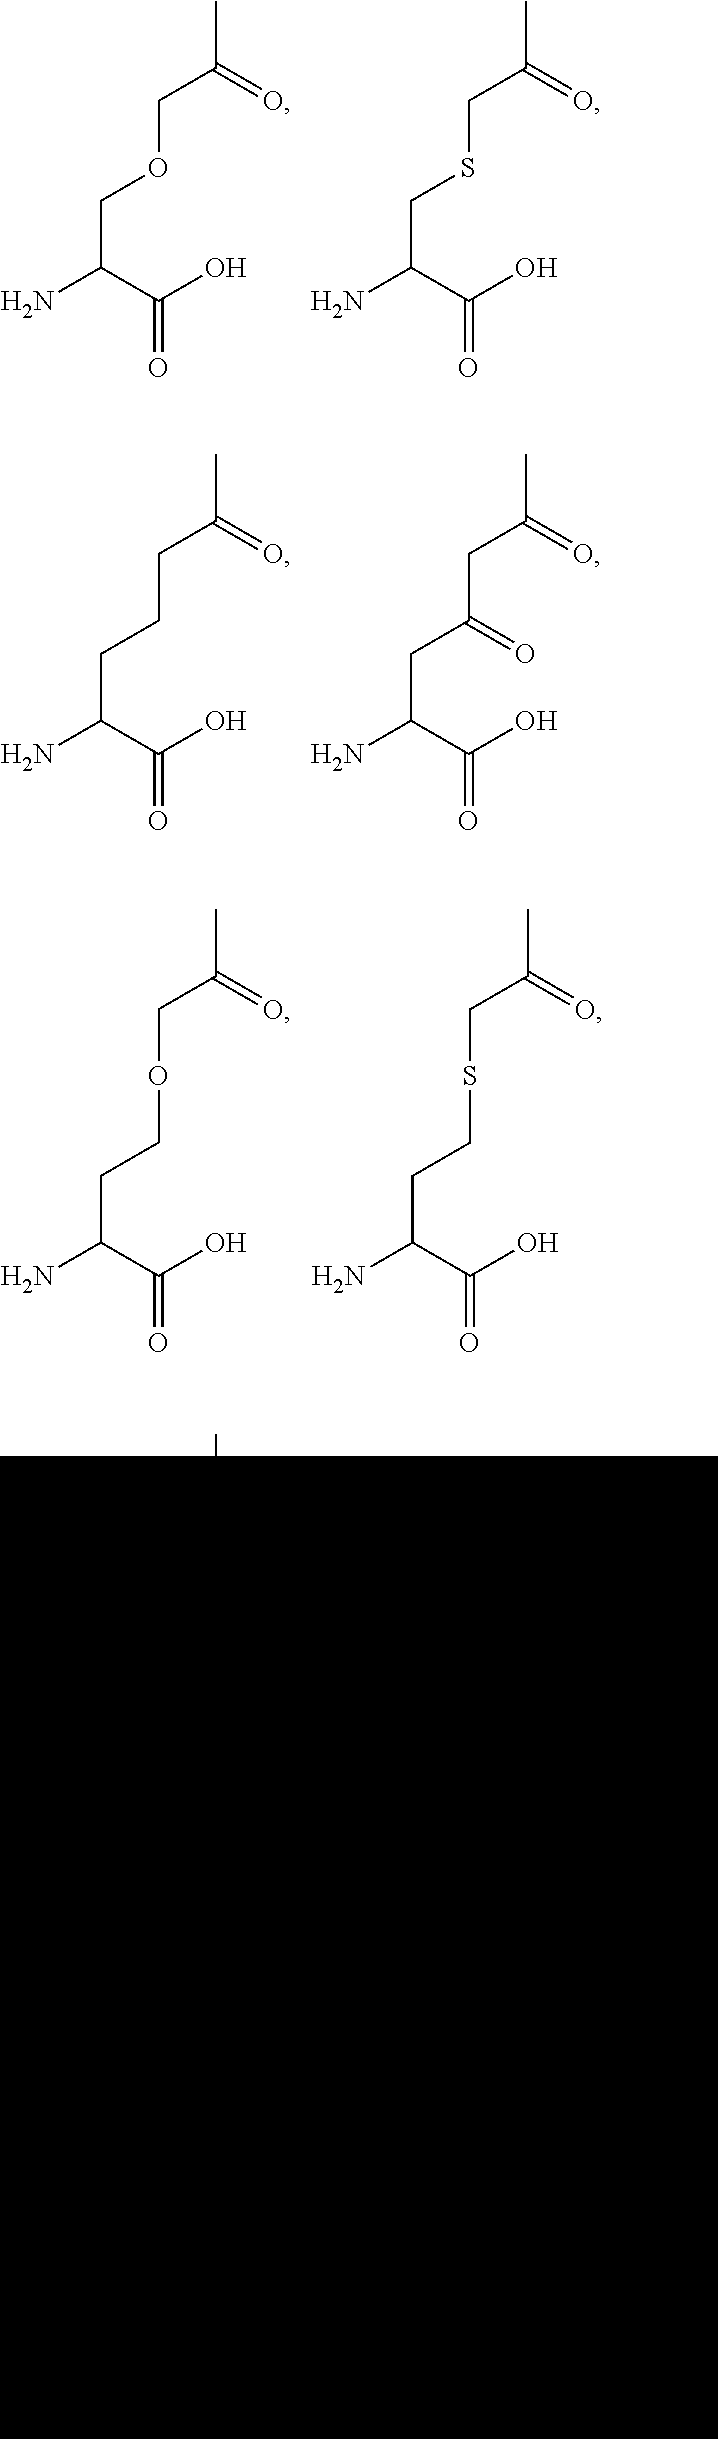 US20150038678A1 - Interleukin-10 Polypeptide Conjugates and Their ...